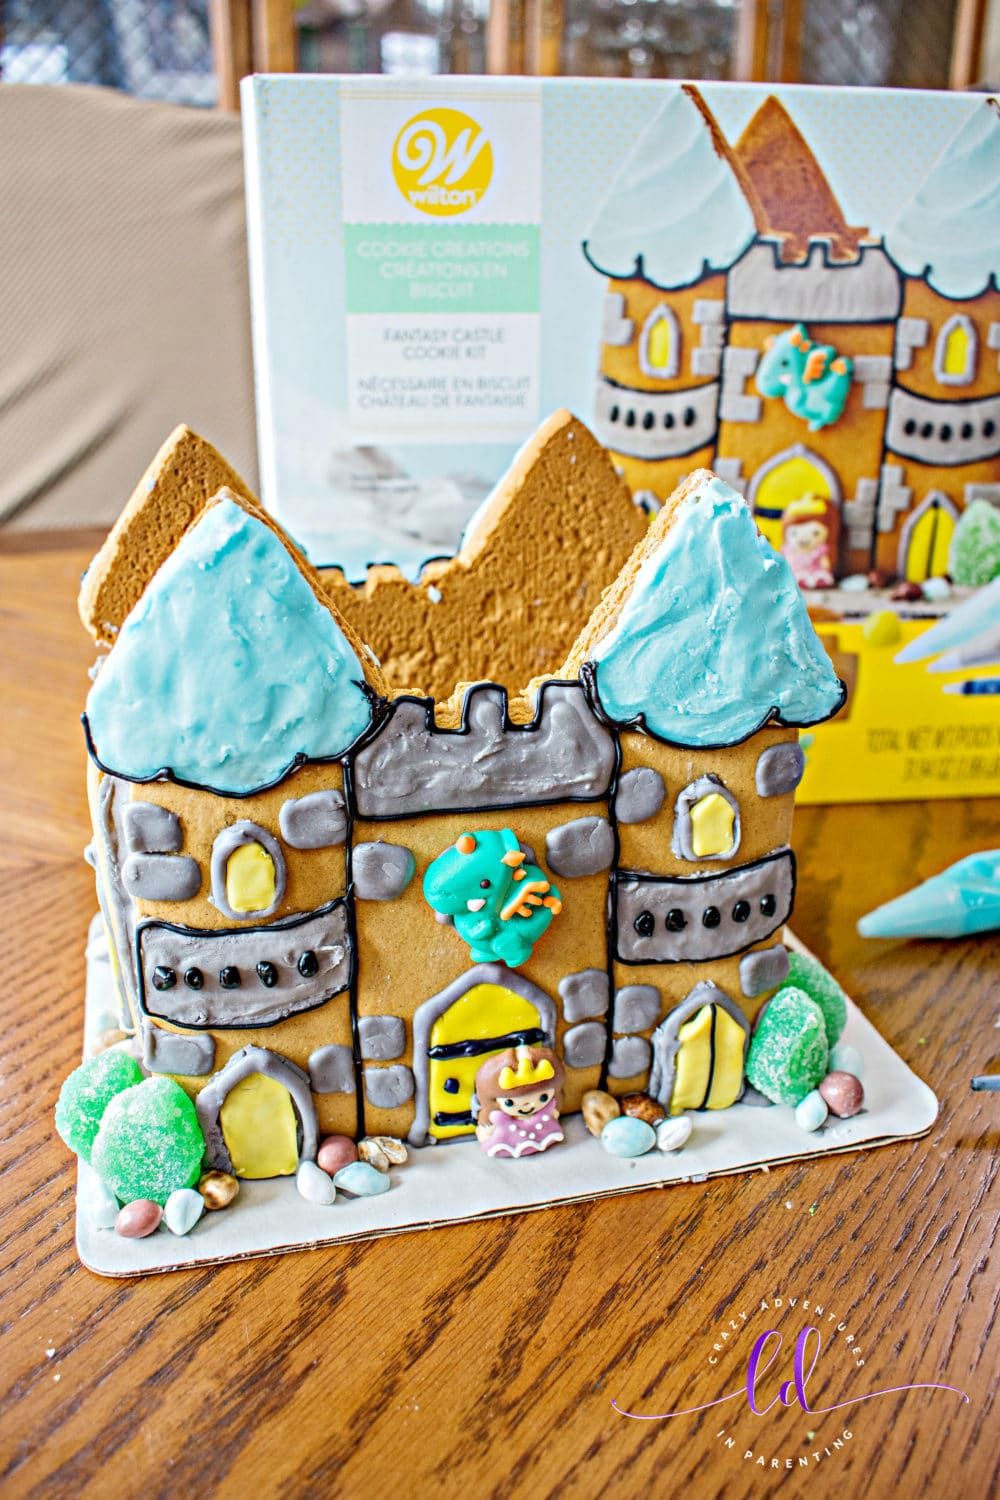 Wilton Cookie Creations Fantasy Castle Cookie Kit decorated